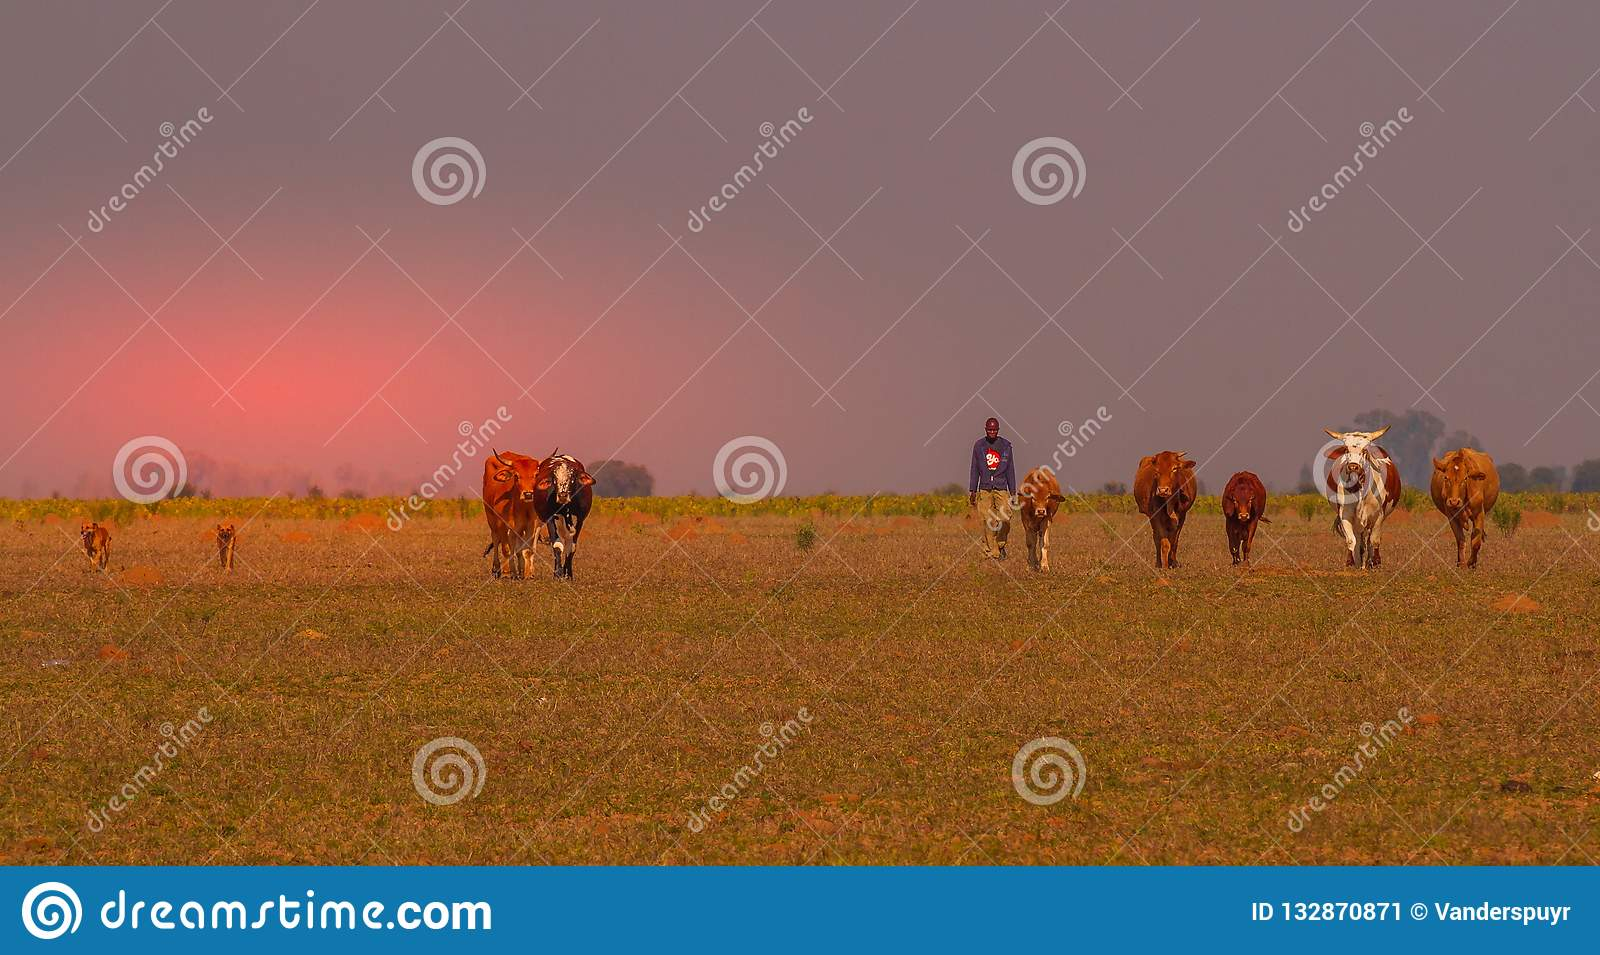 Subsistence farmer in Africa with his dogs and cattle